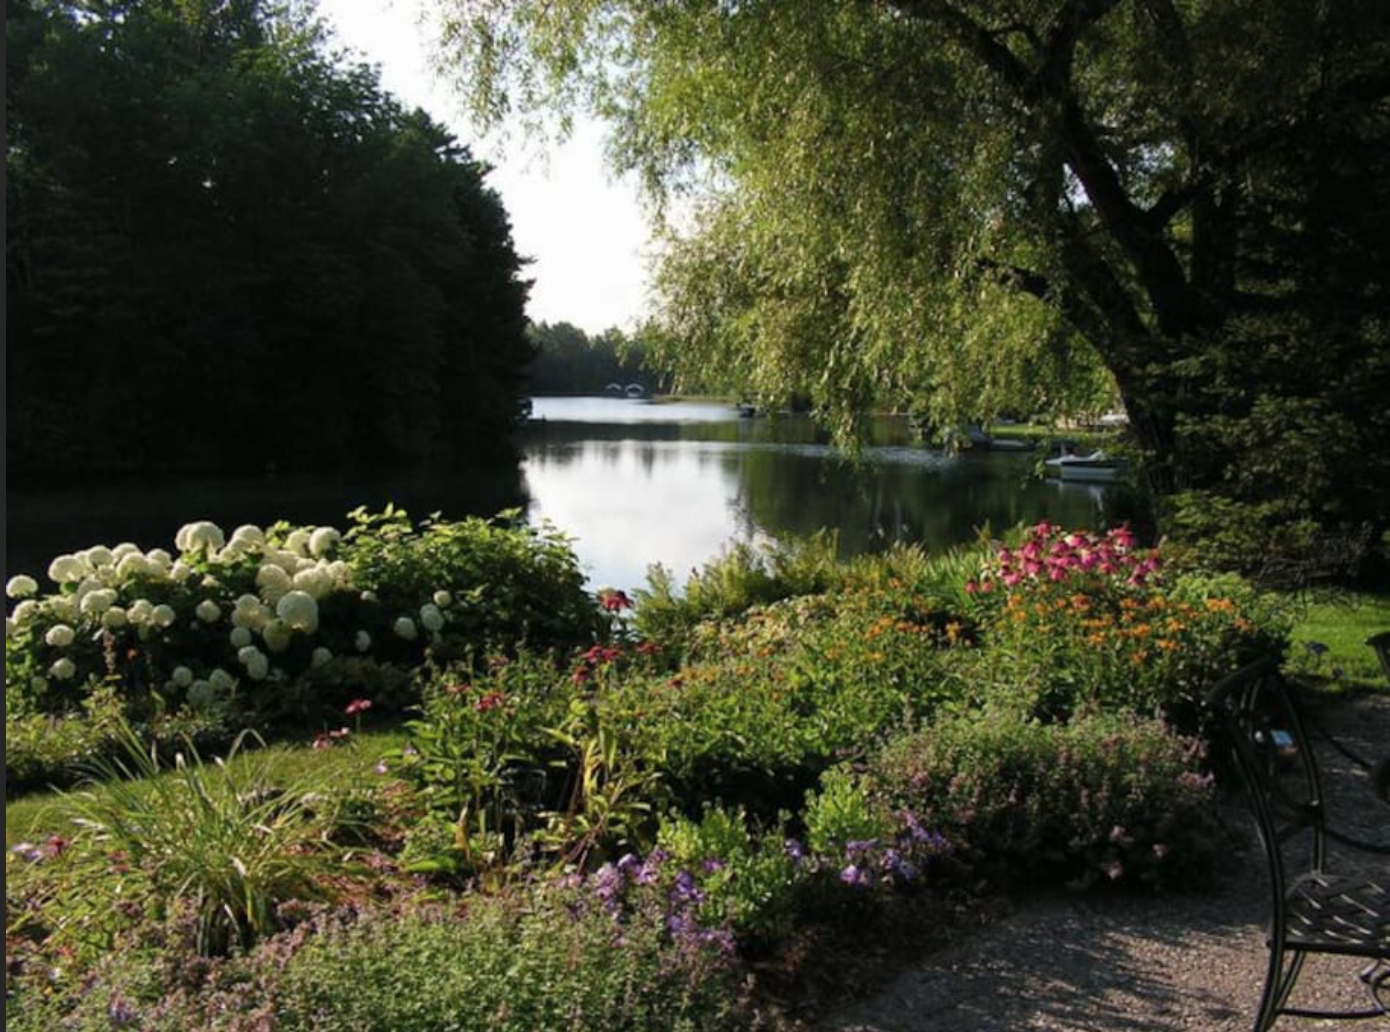 the relaxing garden by the river